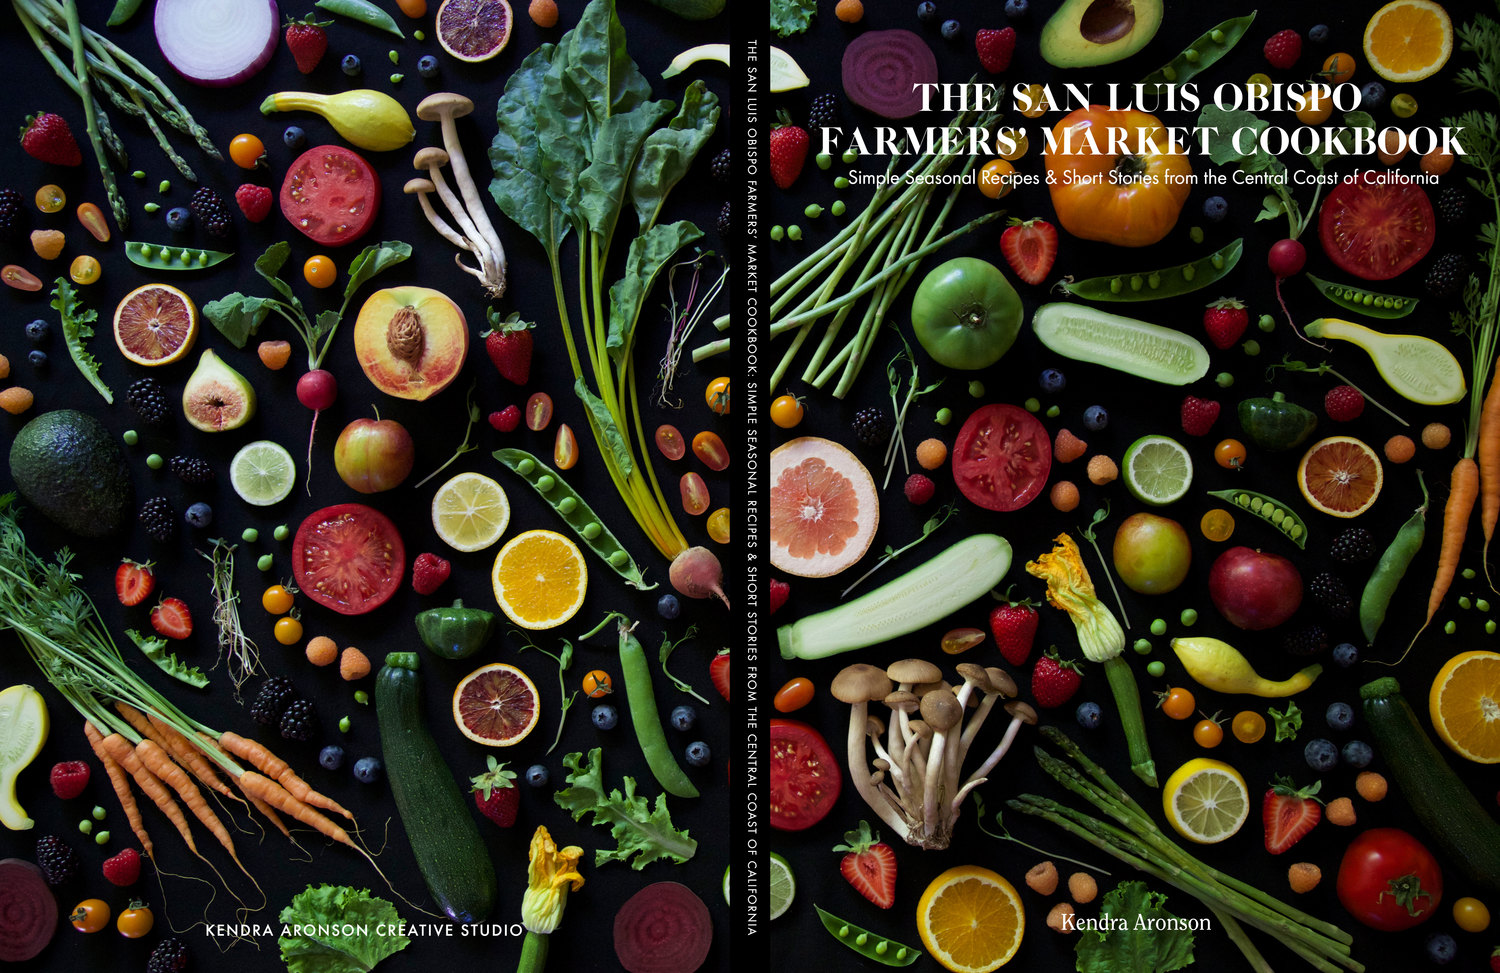 book-cover-front-and-back.jpg